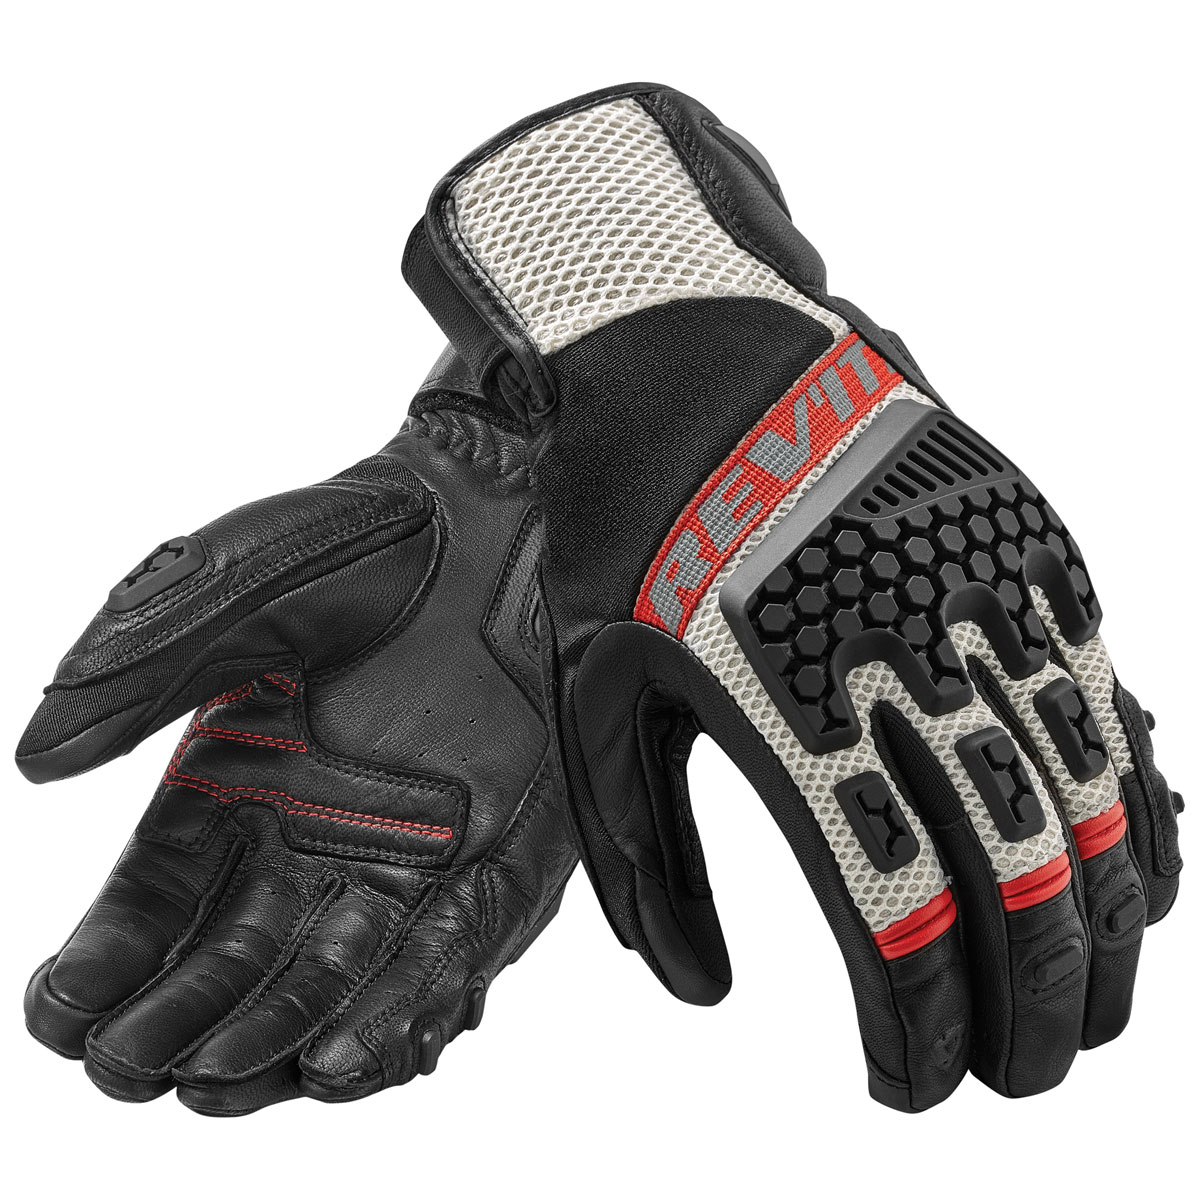 REV′IT! Men's Sand 3 Black/Red Gloves